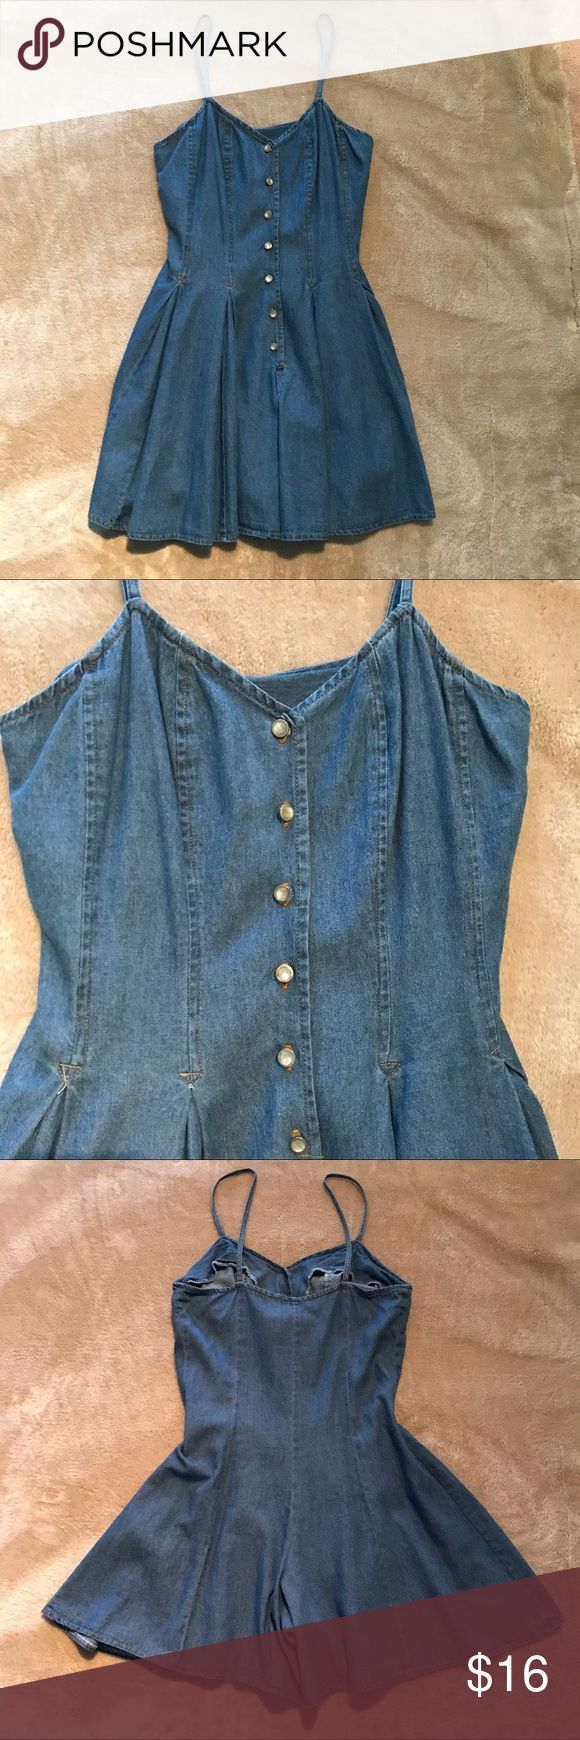 "Jean romper Lightweight cotton Jean romper with flared pleated bottom. Mother-of-pearl-style gold metal buttons down front. Gently preowned and in good condition!  Pit to pit 16"" Length 32"" Waist 14.5"" across Venus Other"